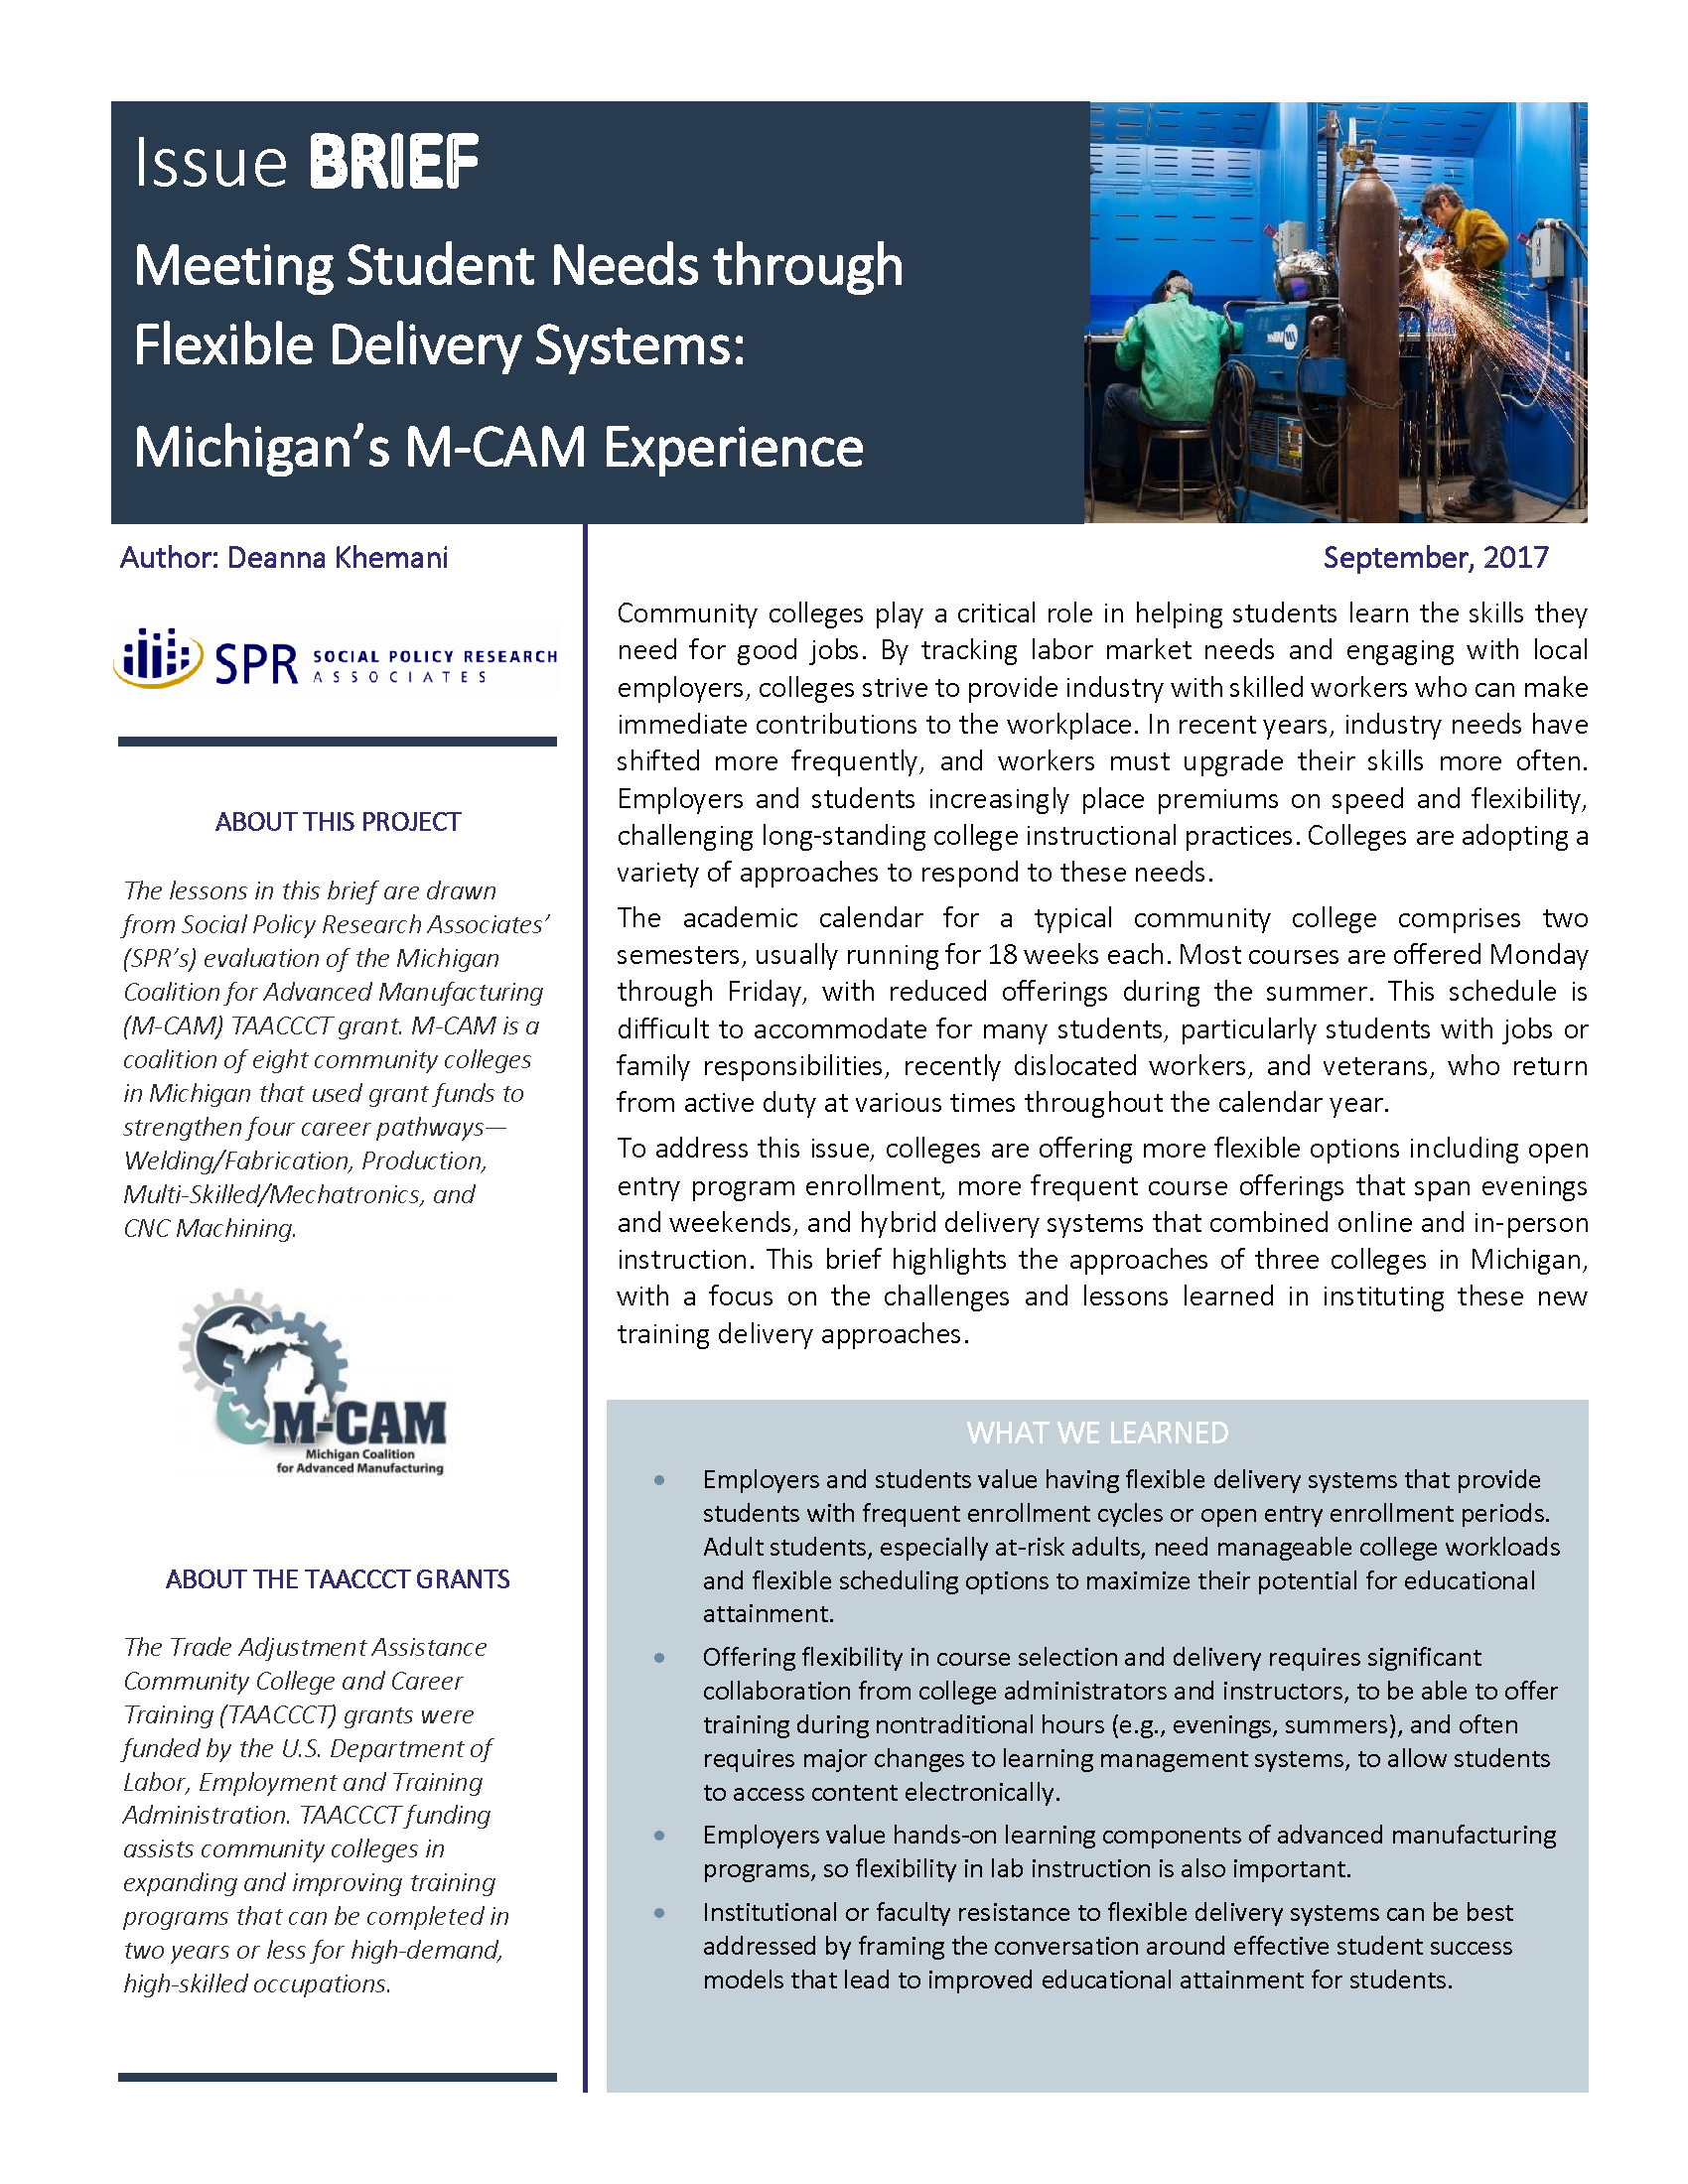 Cover of Meeting Student Needs through Flexible Delivery Systems: Michigan's M-CAM Experience Brief